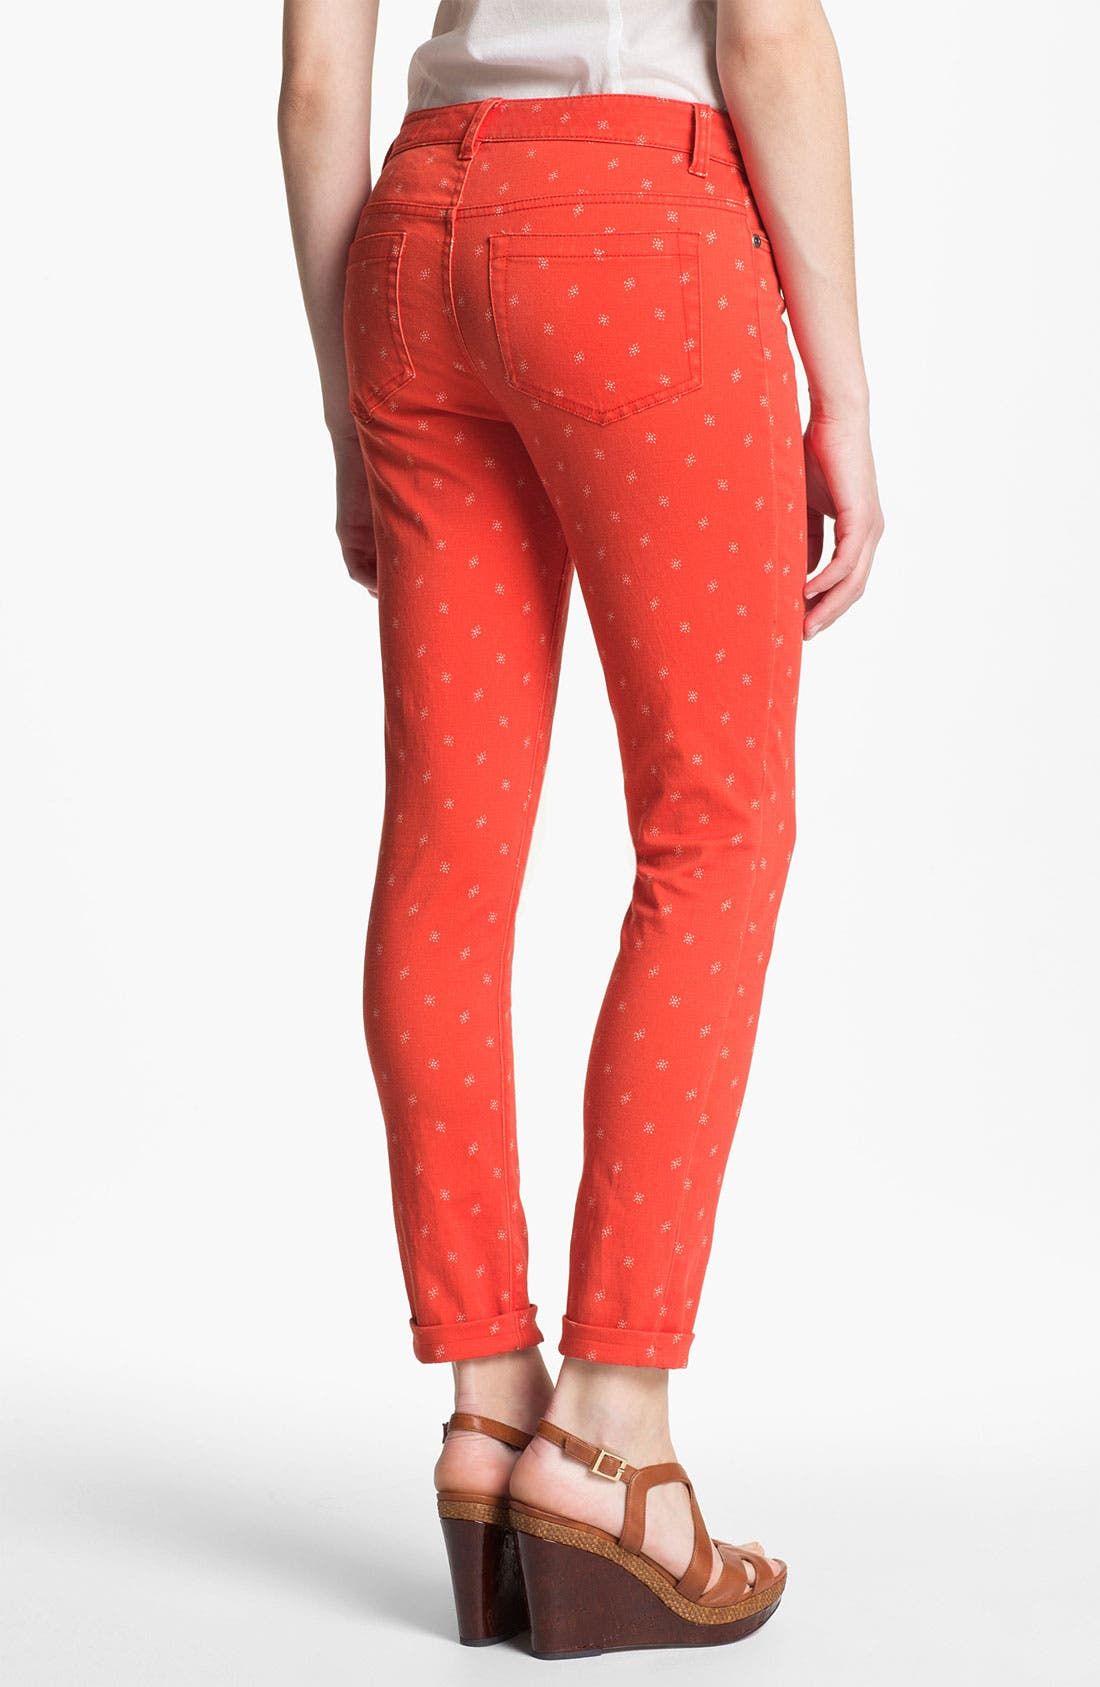 Alternate Image 2  - Two by Vince Camuto 'Shorty' Star Print Jeans (Fiery Red)